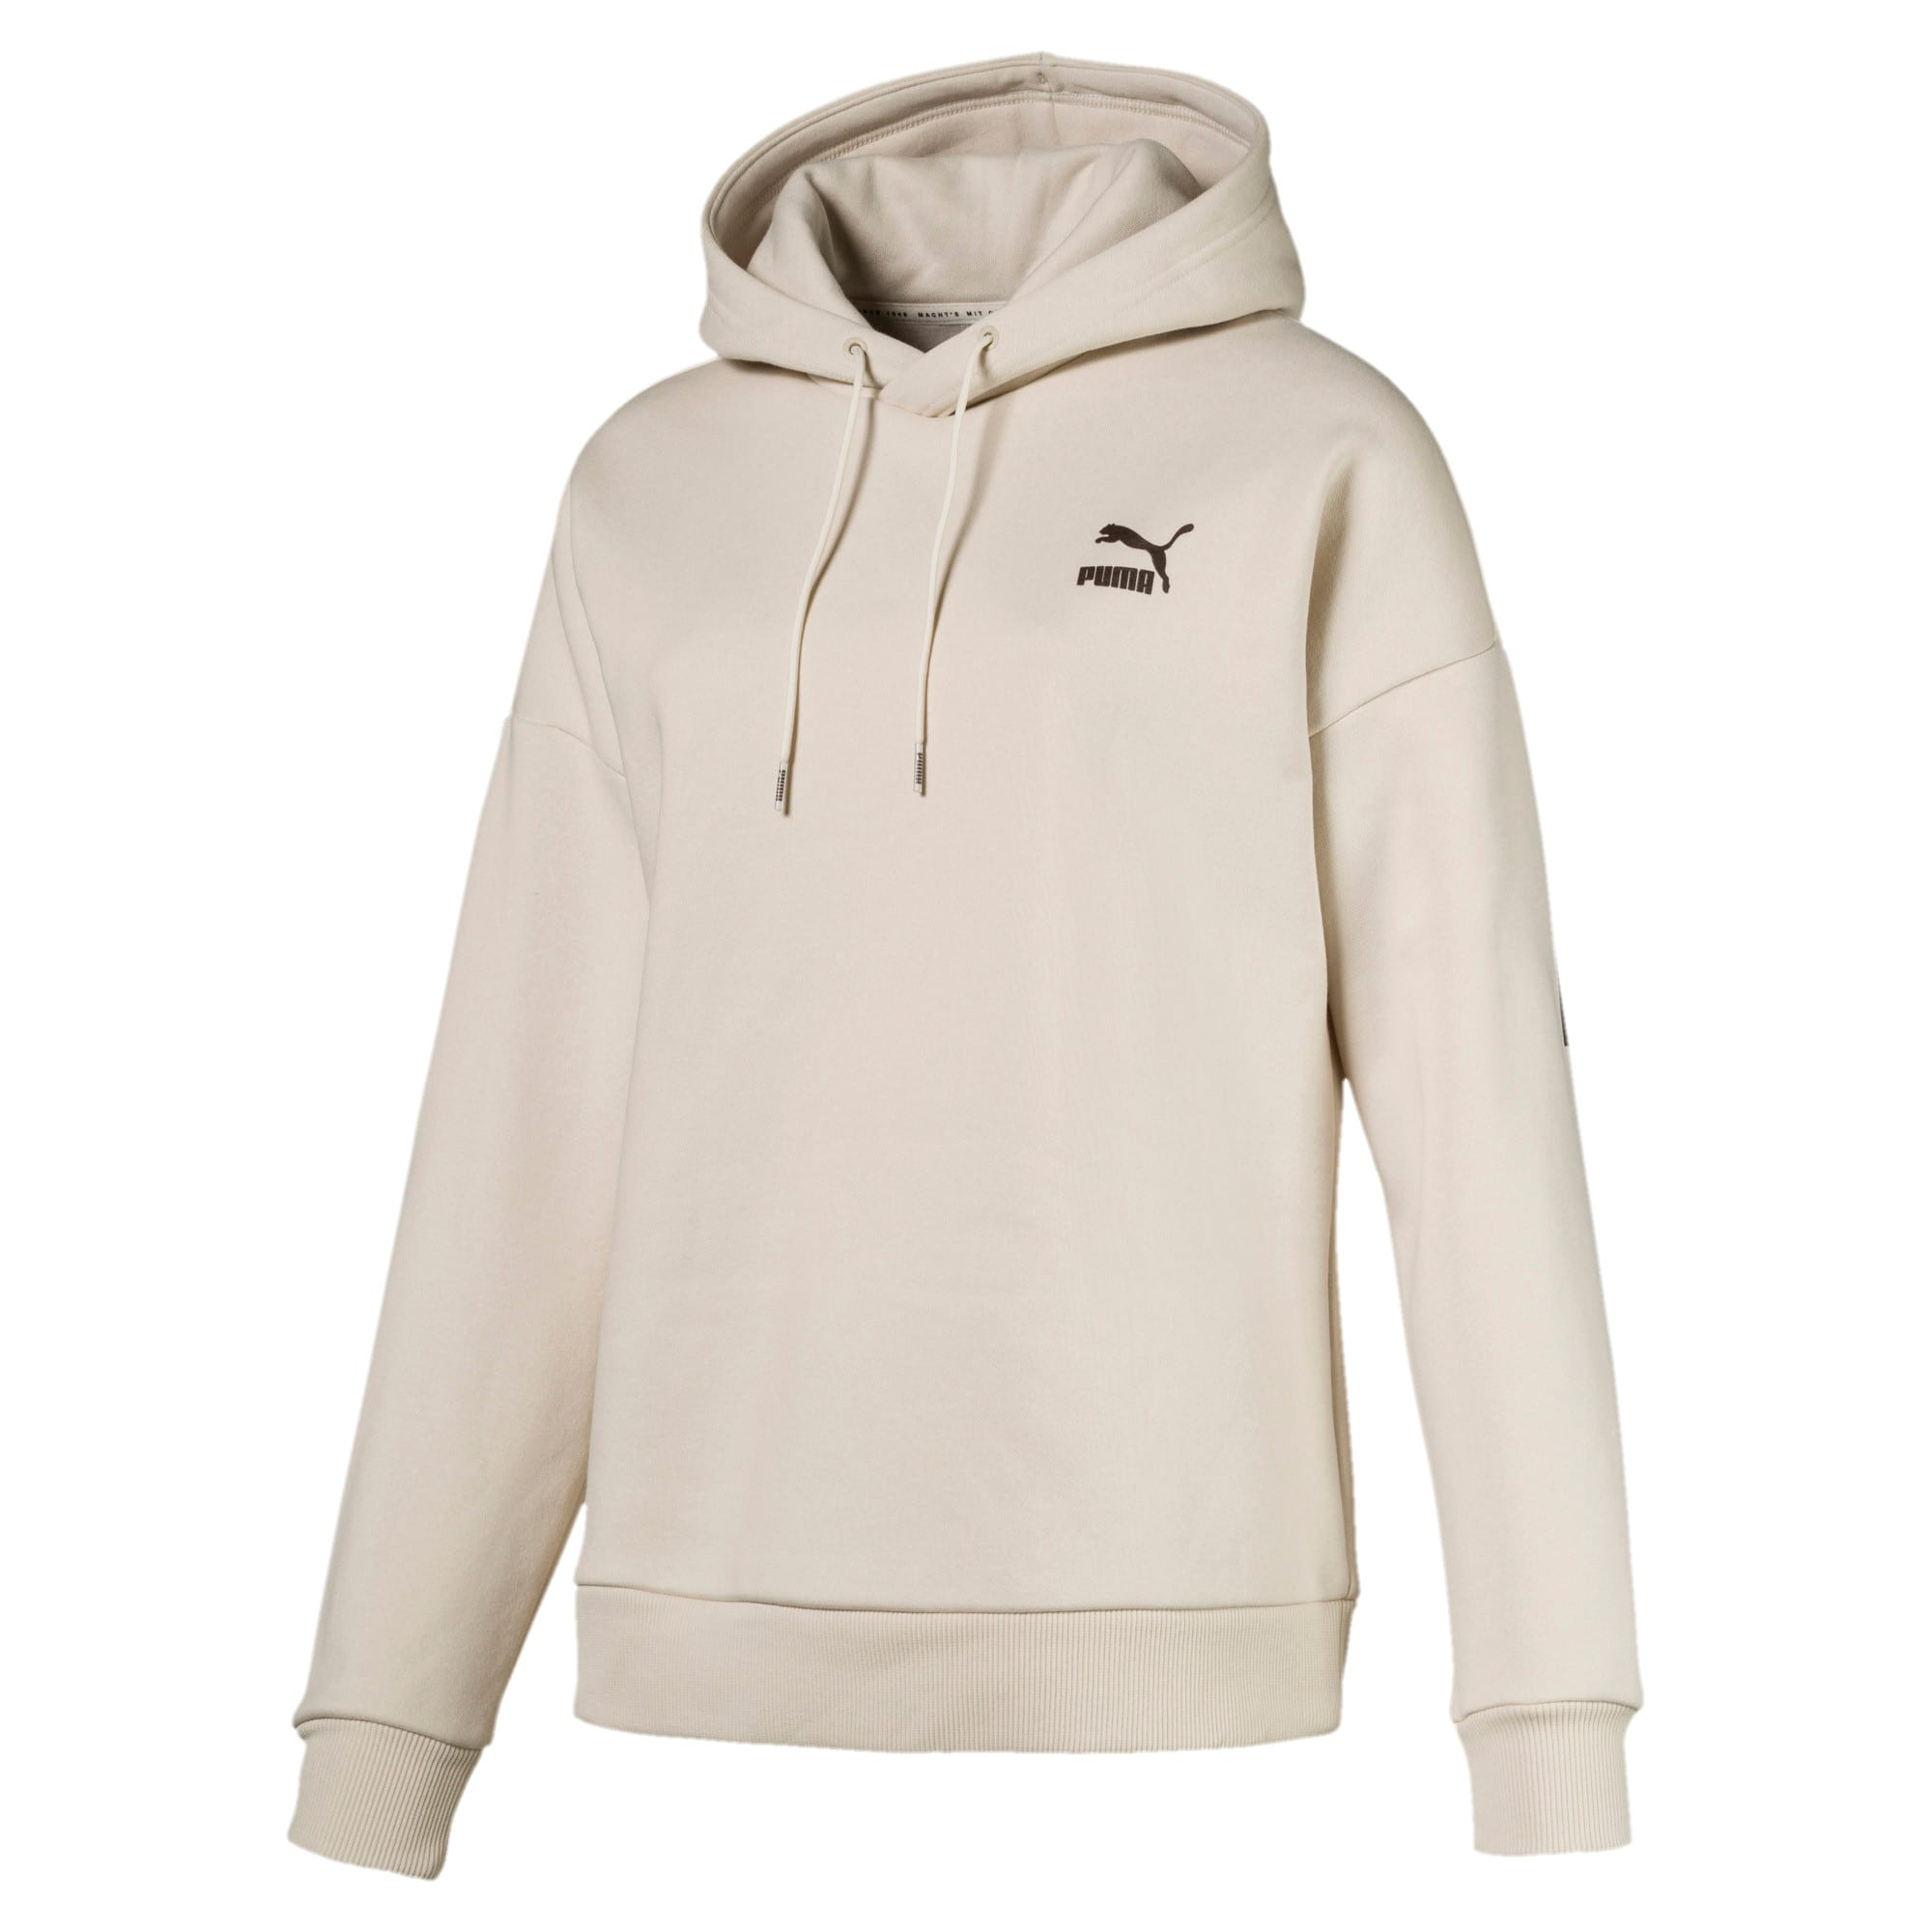 Thumbnail 1 of Retro Women's Hoodie, Birch, medium